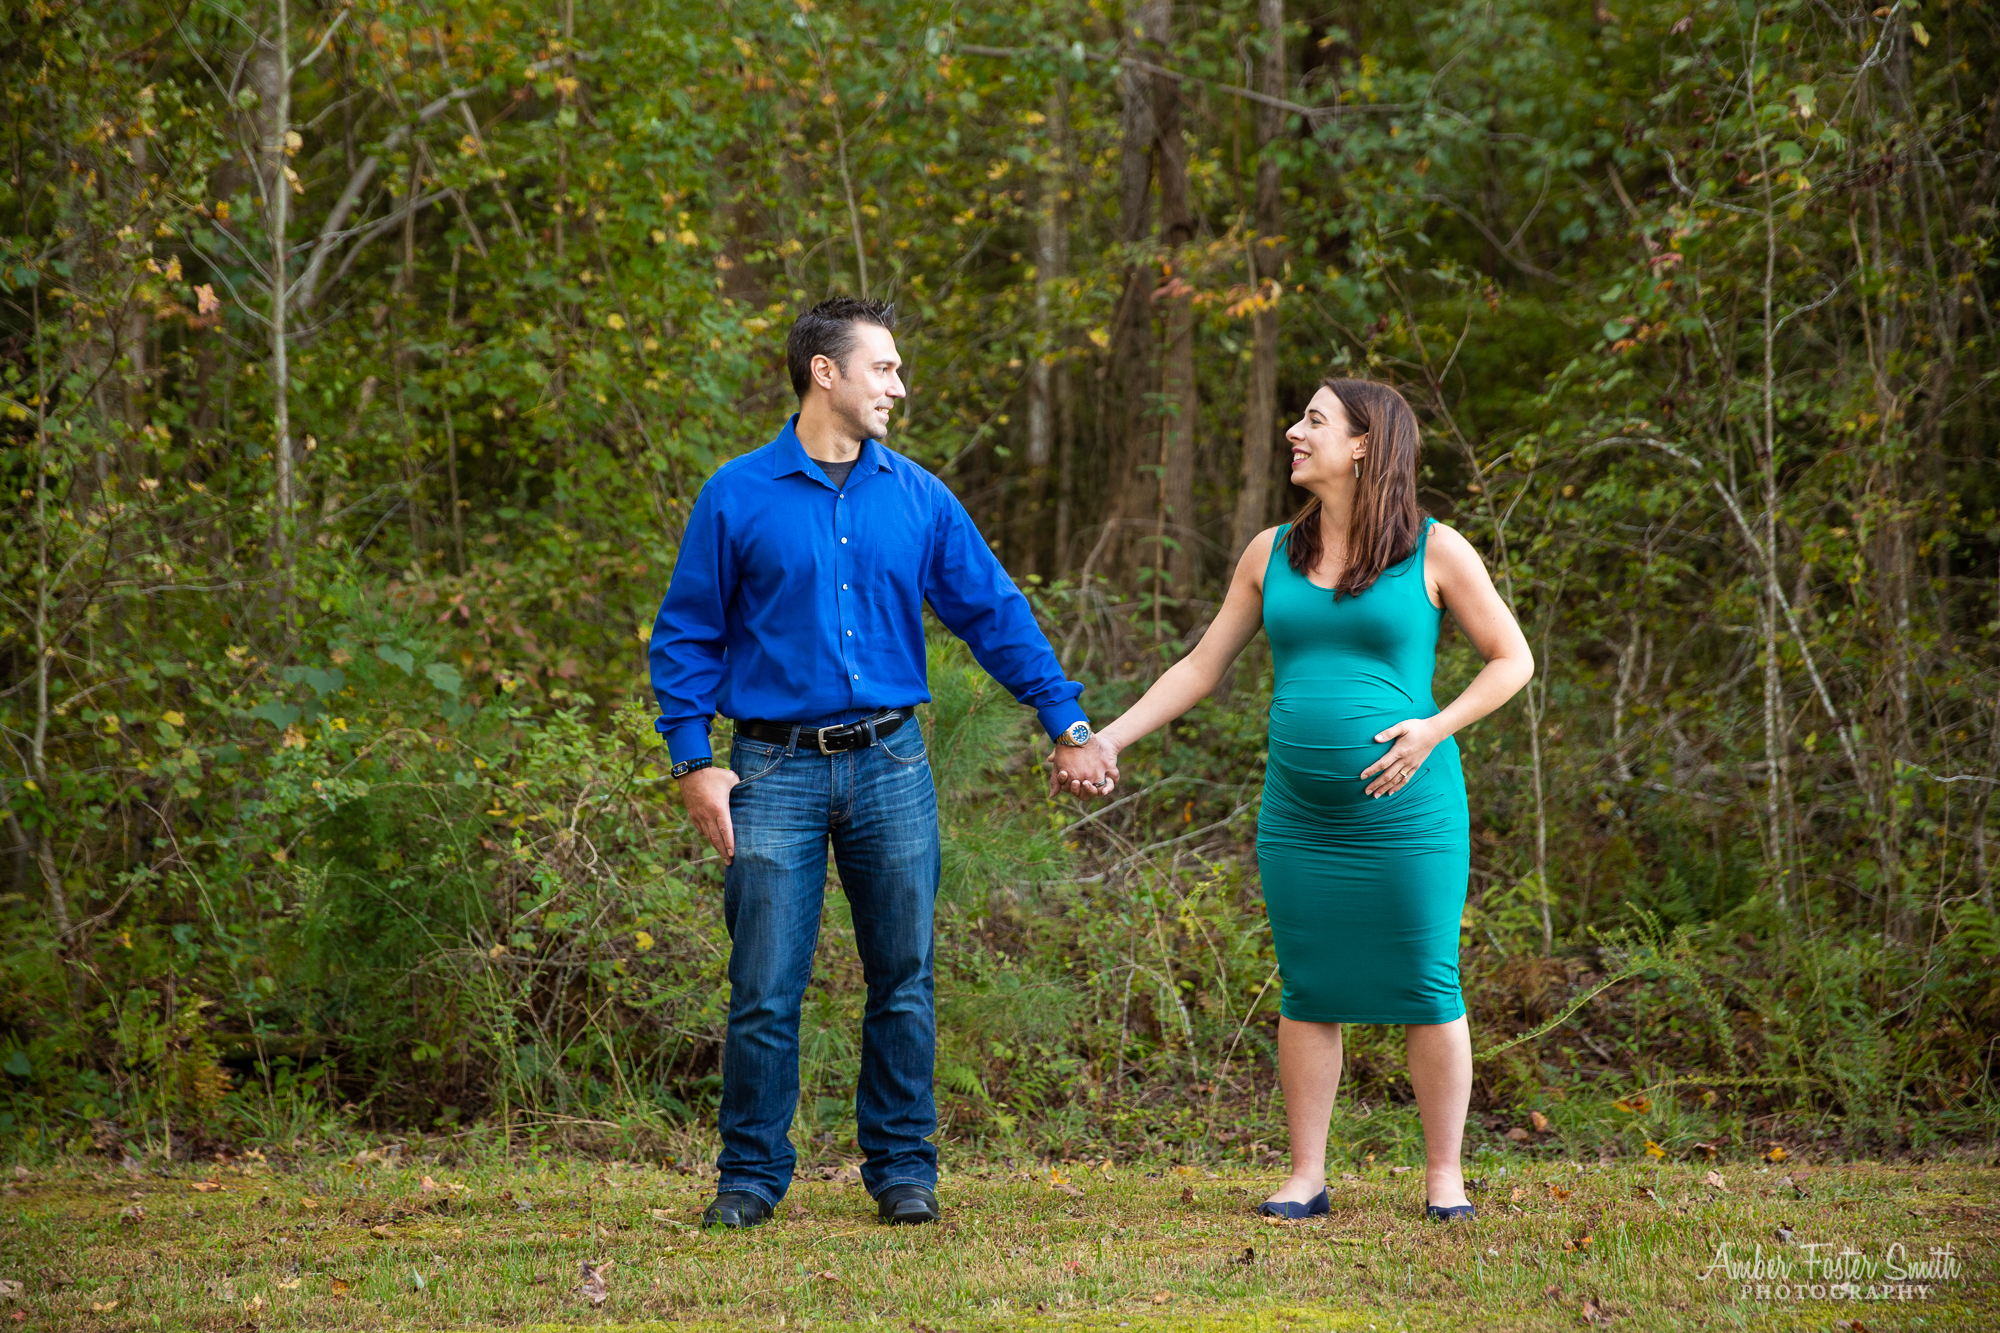 Pregnant woman and man laughing